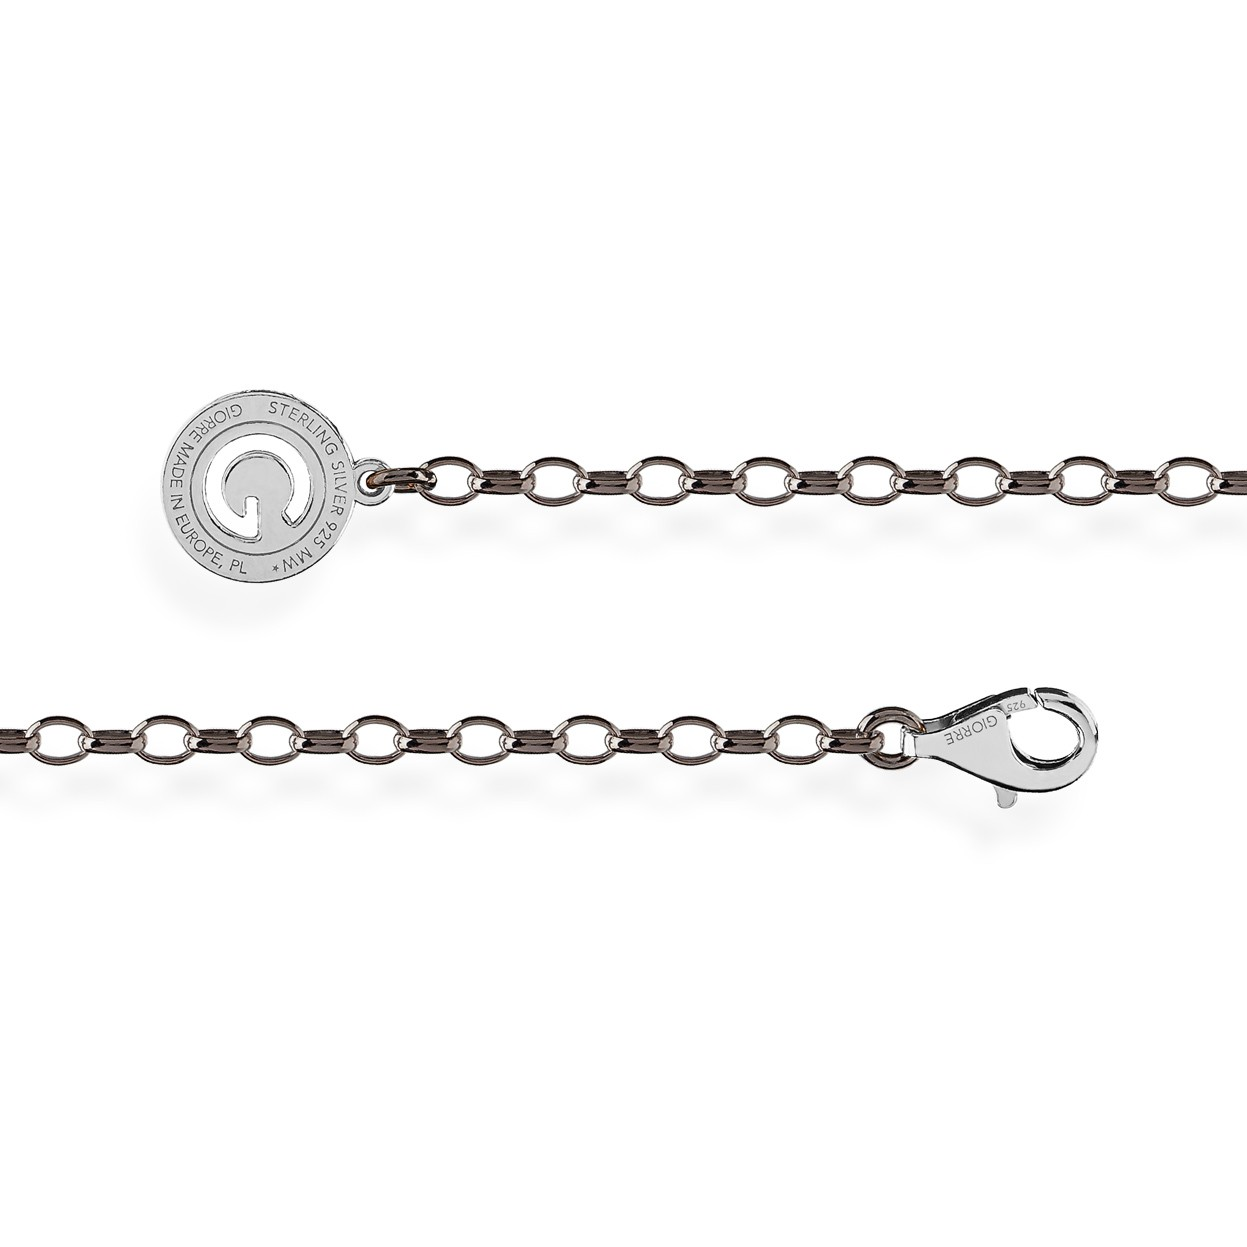 STERLING SILVER NECKLACE 55-65 CM BLACK RHODIUM, LIGHT RHODIUM CLASP, LINK 4X3 MM